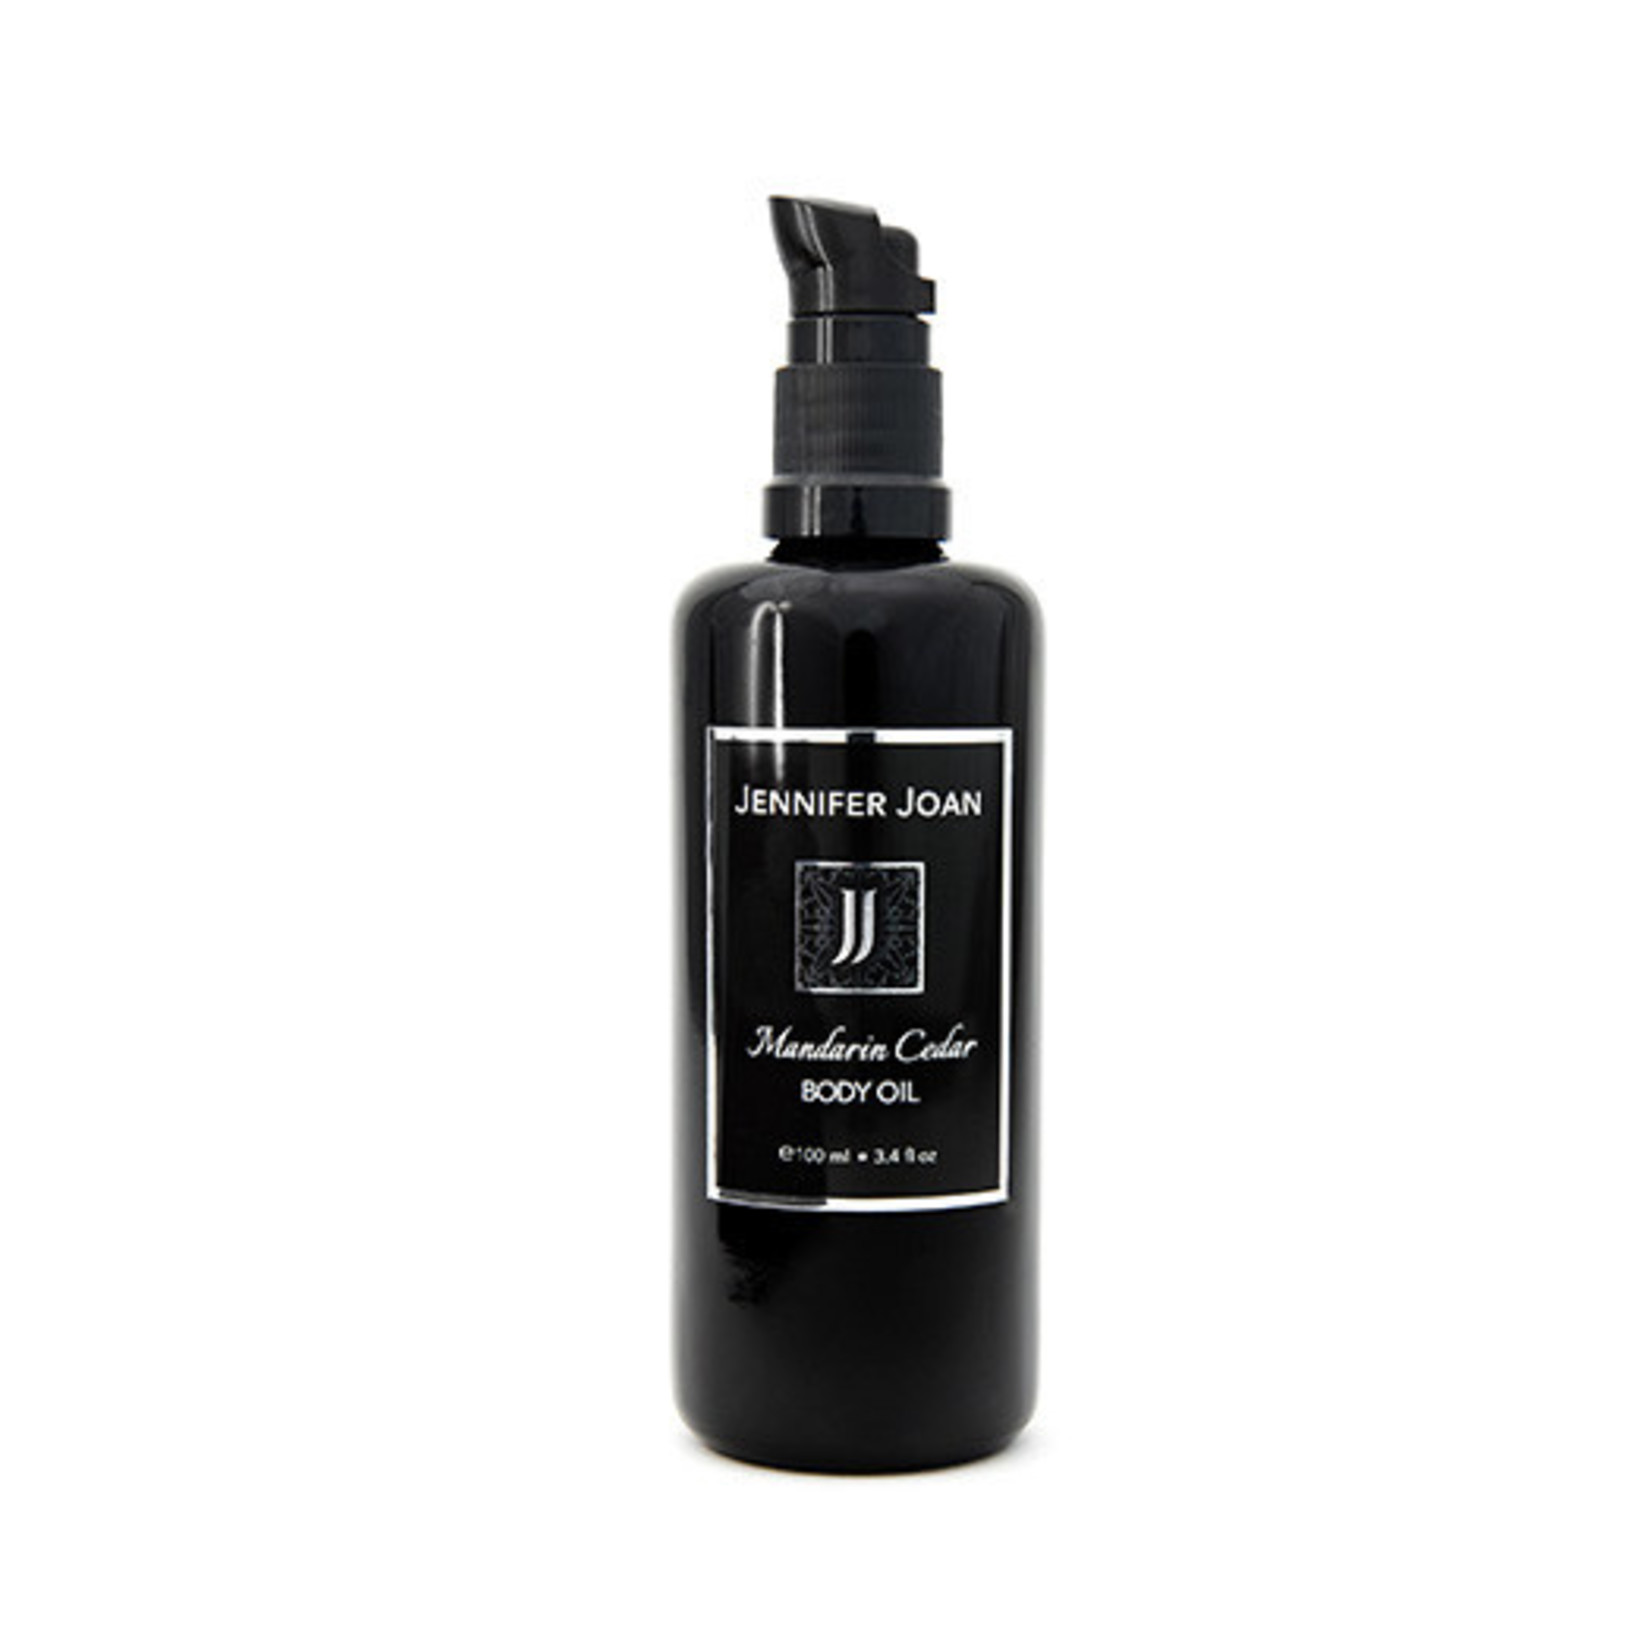 JENNIFER JOAN MANDARIN CEDAR BODY OIL